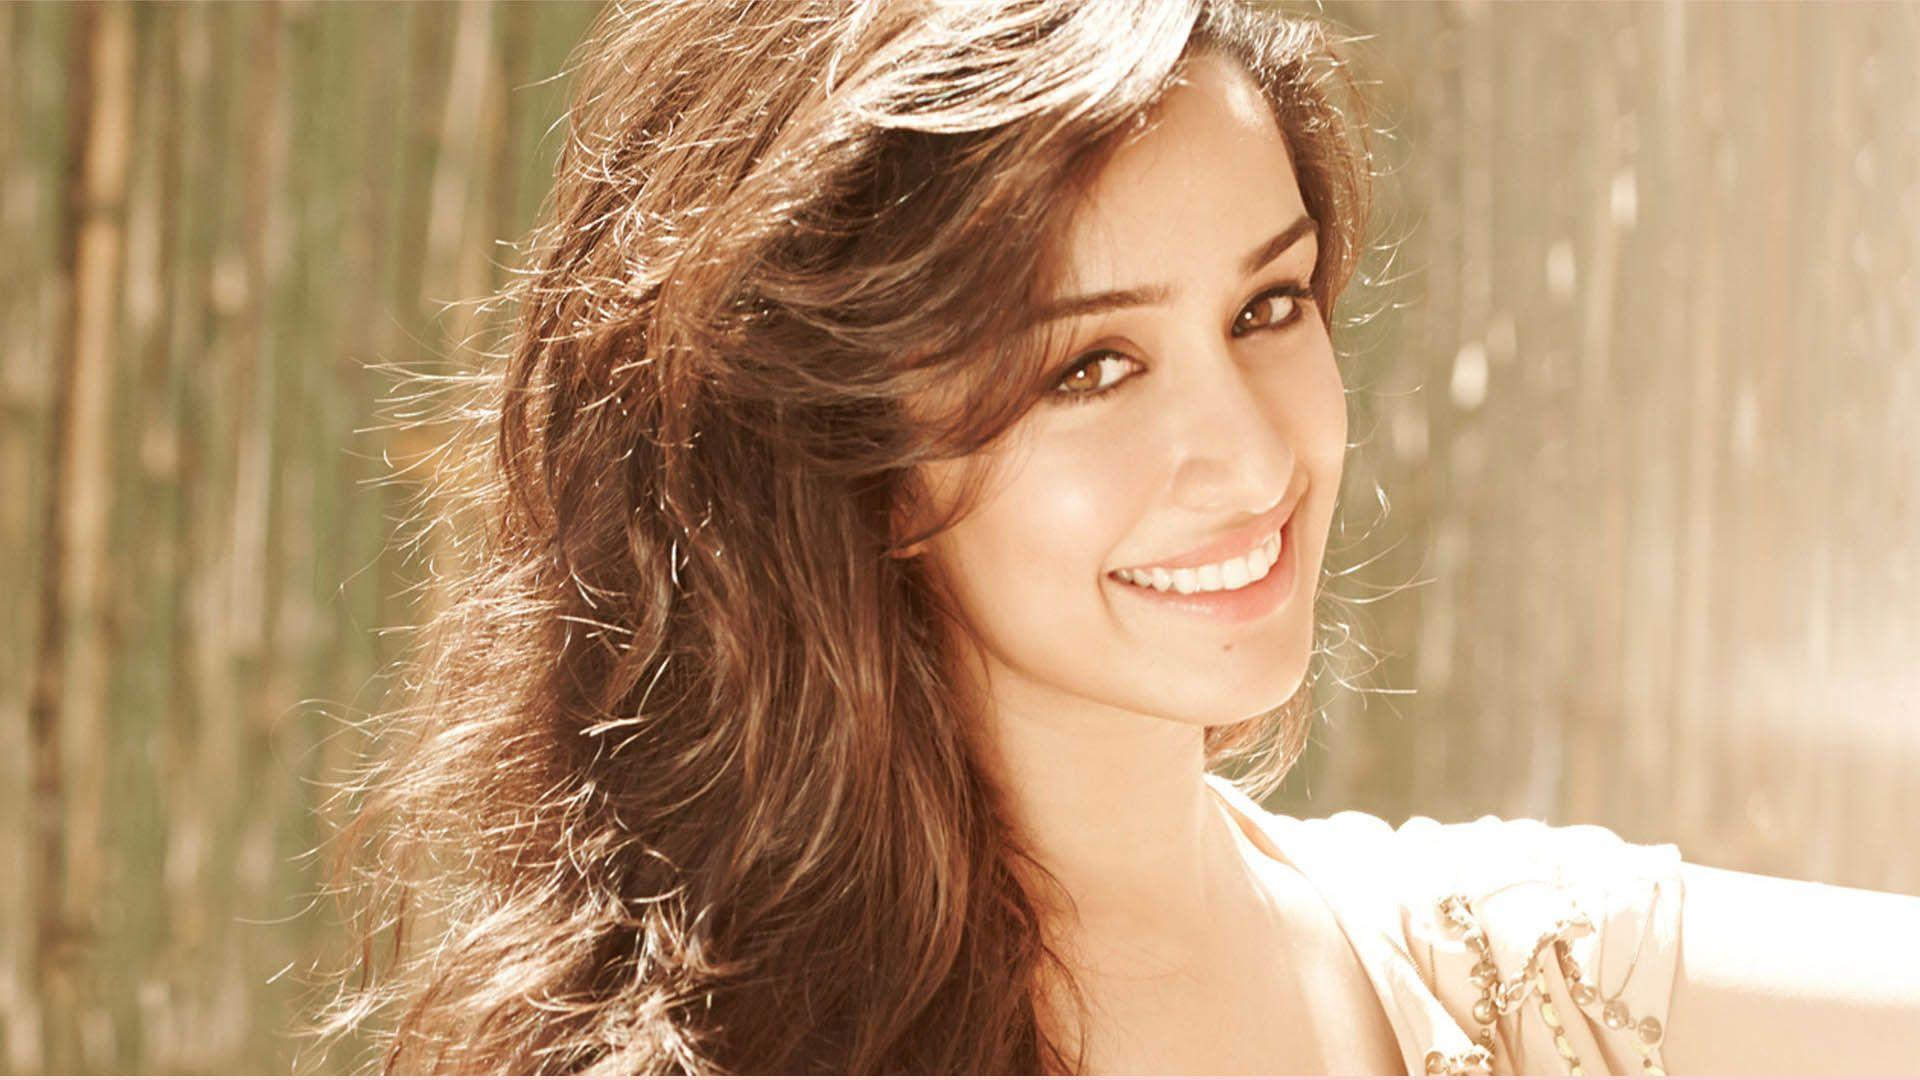 shraddha_kapoor_wallpaper_97338029